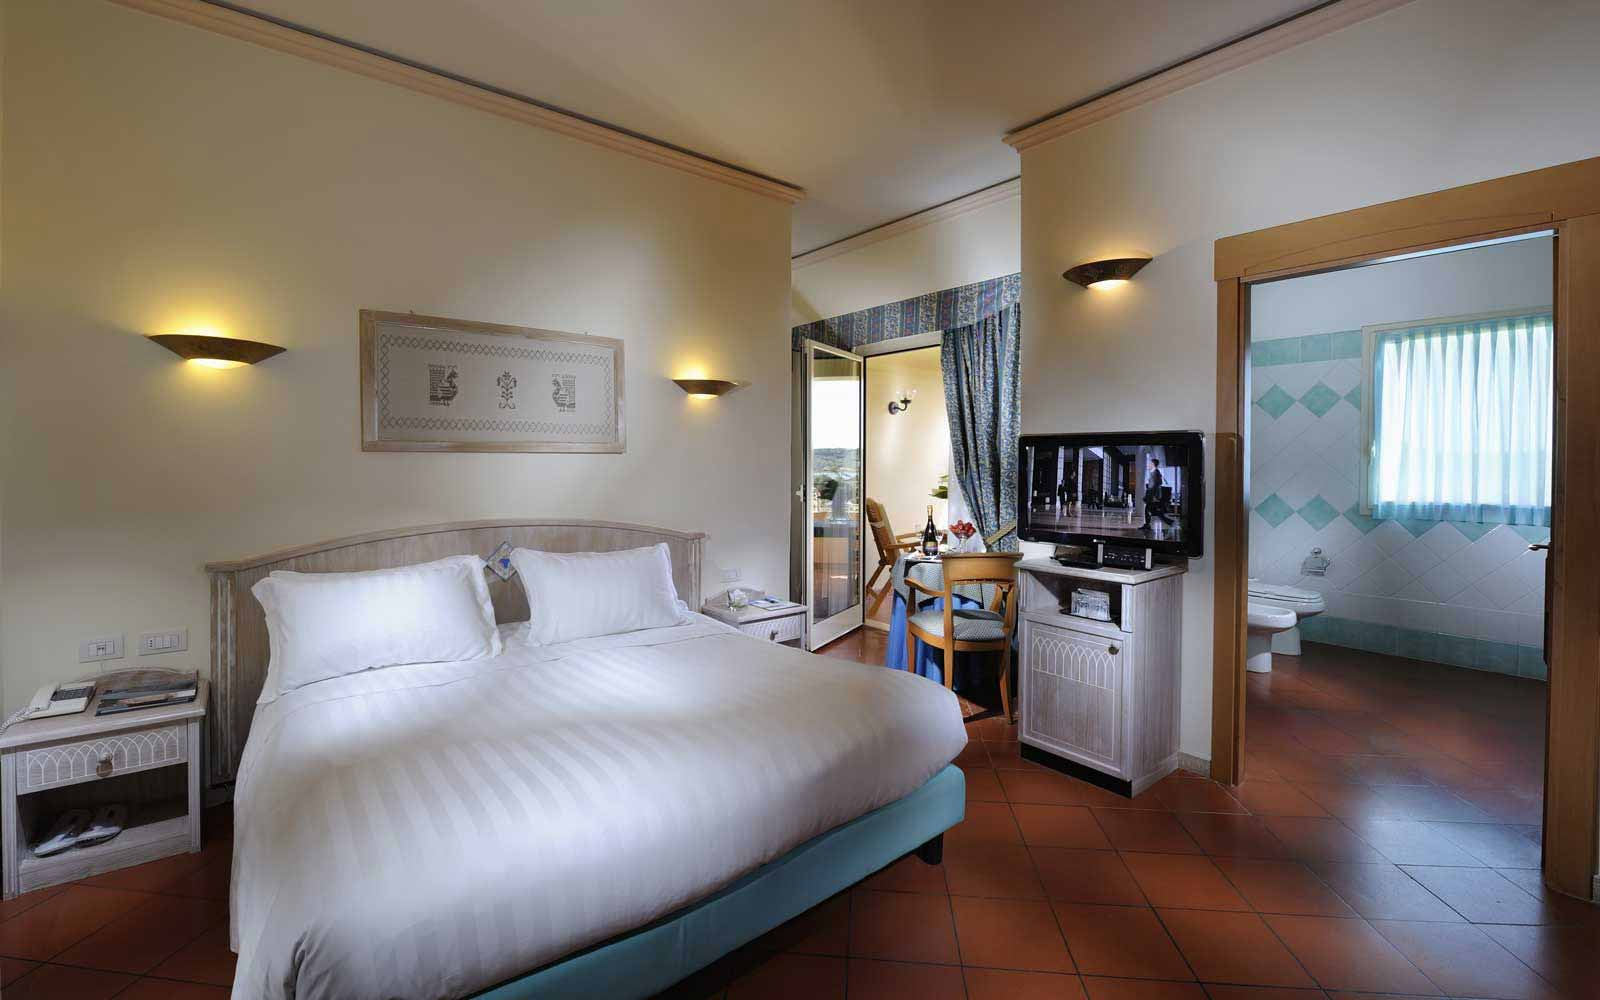 Superior room at Pullman Timi Ama Sardegna